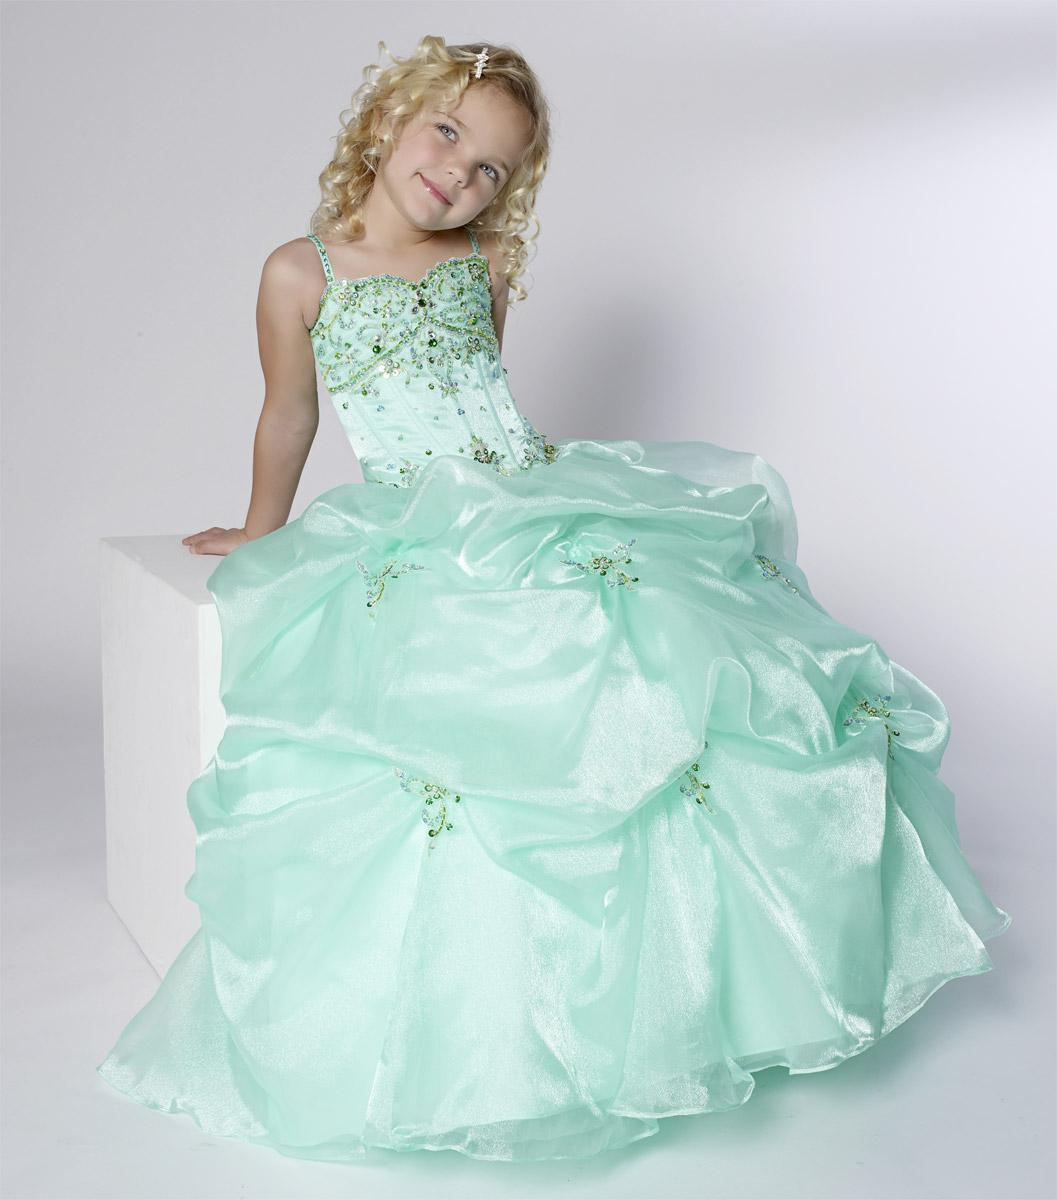 Girls Size 12 Christmas Dresses Online | Girls Christmas Dresses ...